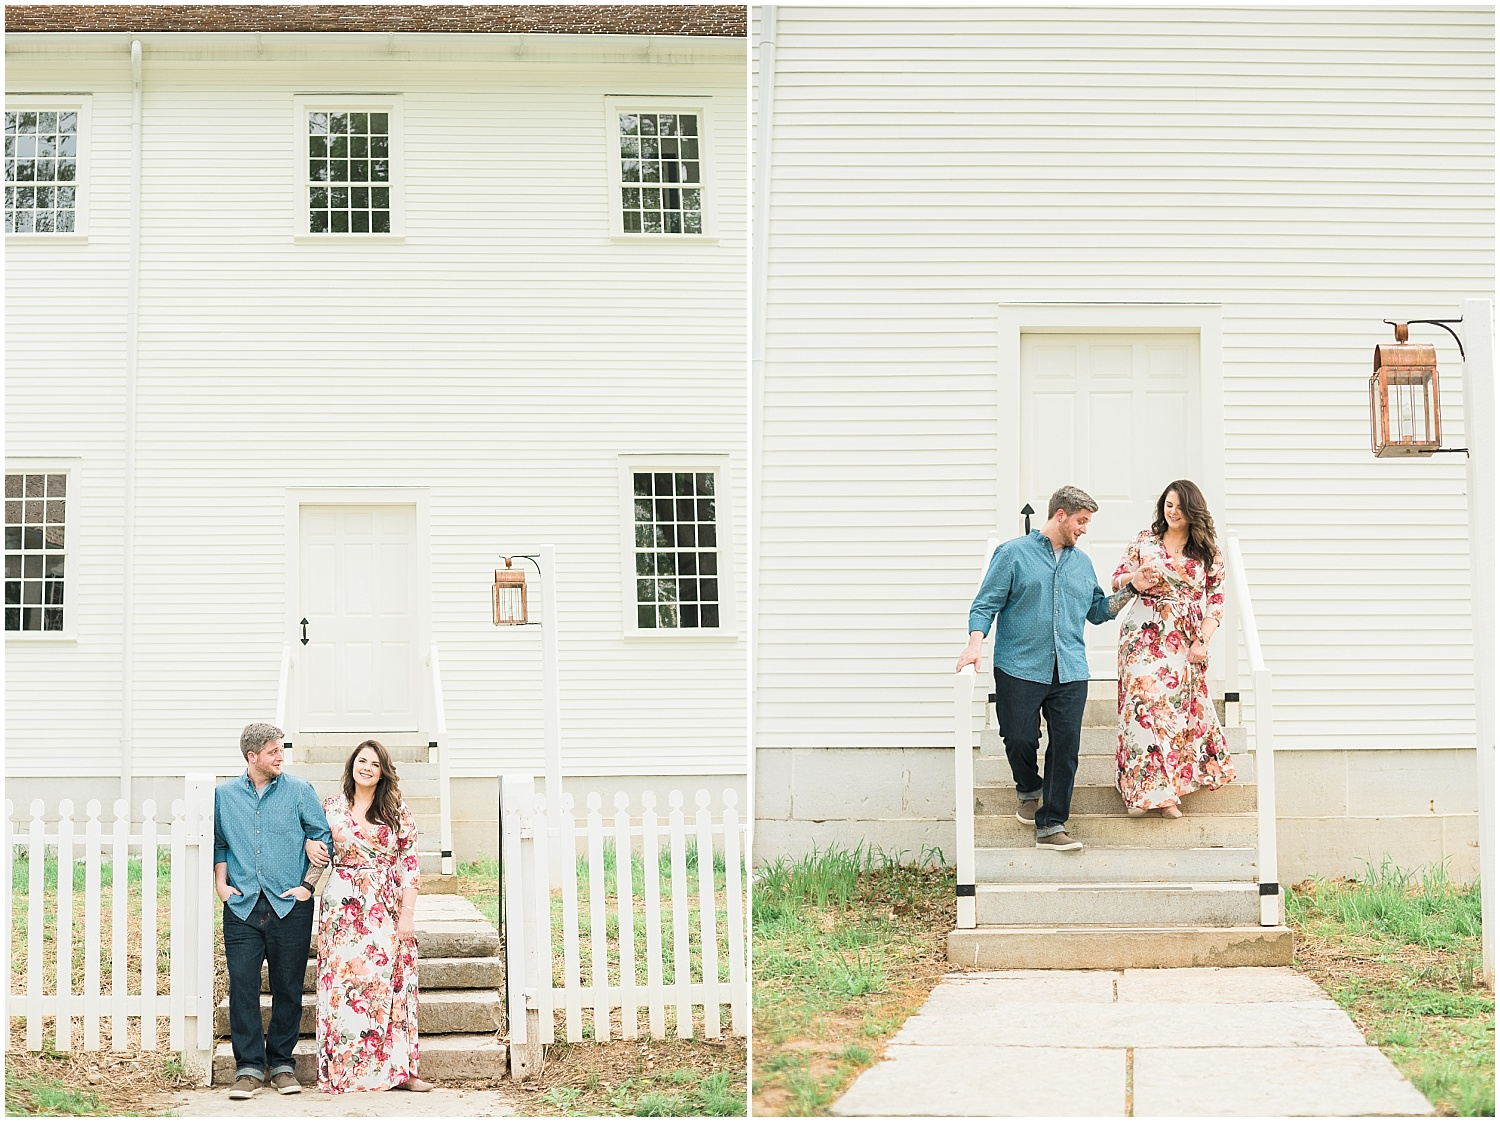 historic-engagement-session-locations